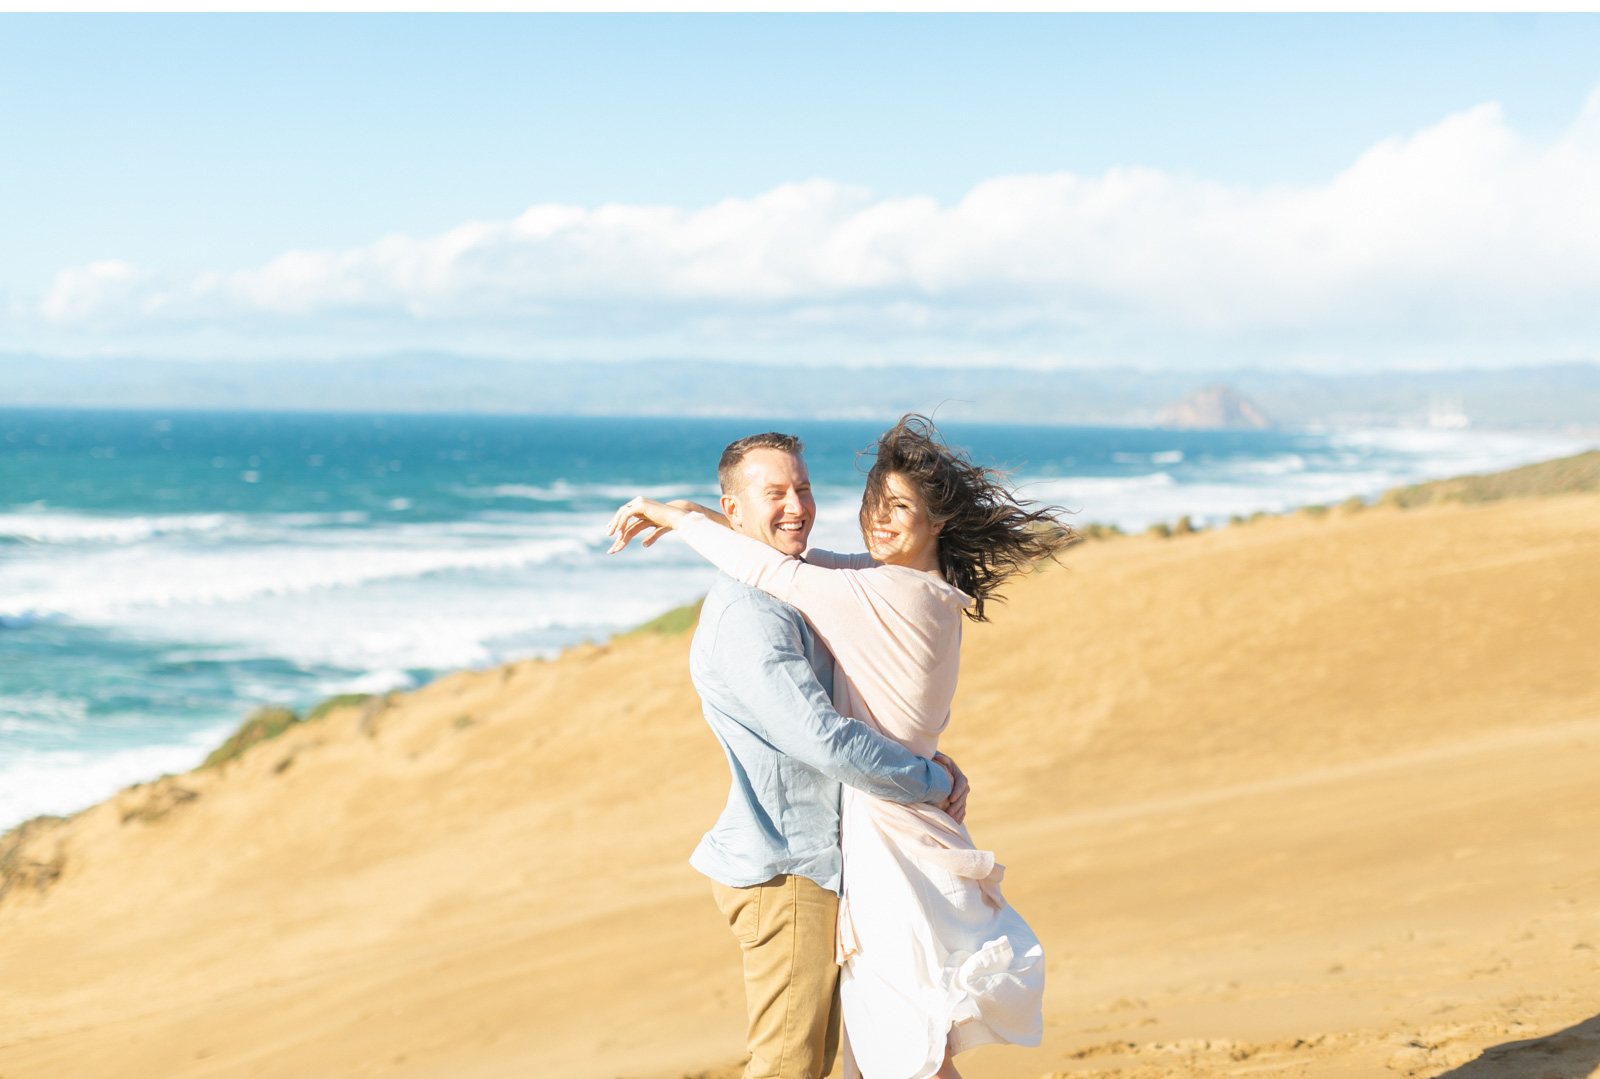 Professional-Wedding-Photographer-Southern-California-Weddings-Malibu-Engagement-Natalie-Schutt-Photography-Style-Me-Pretty-Beachside-Engagement_07.jpg